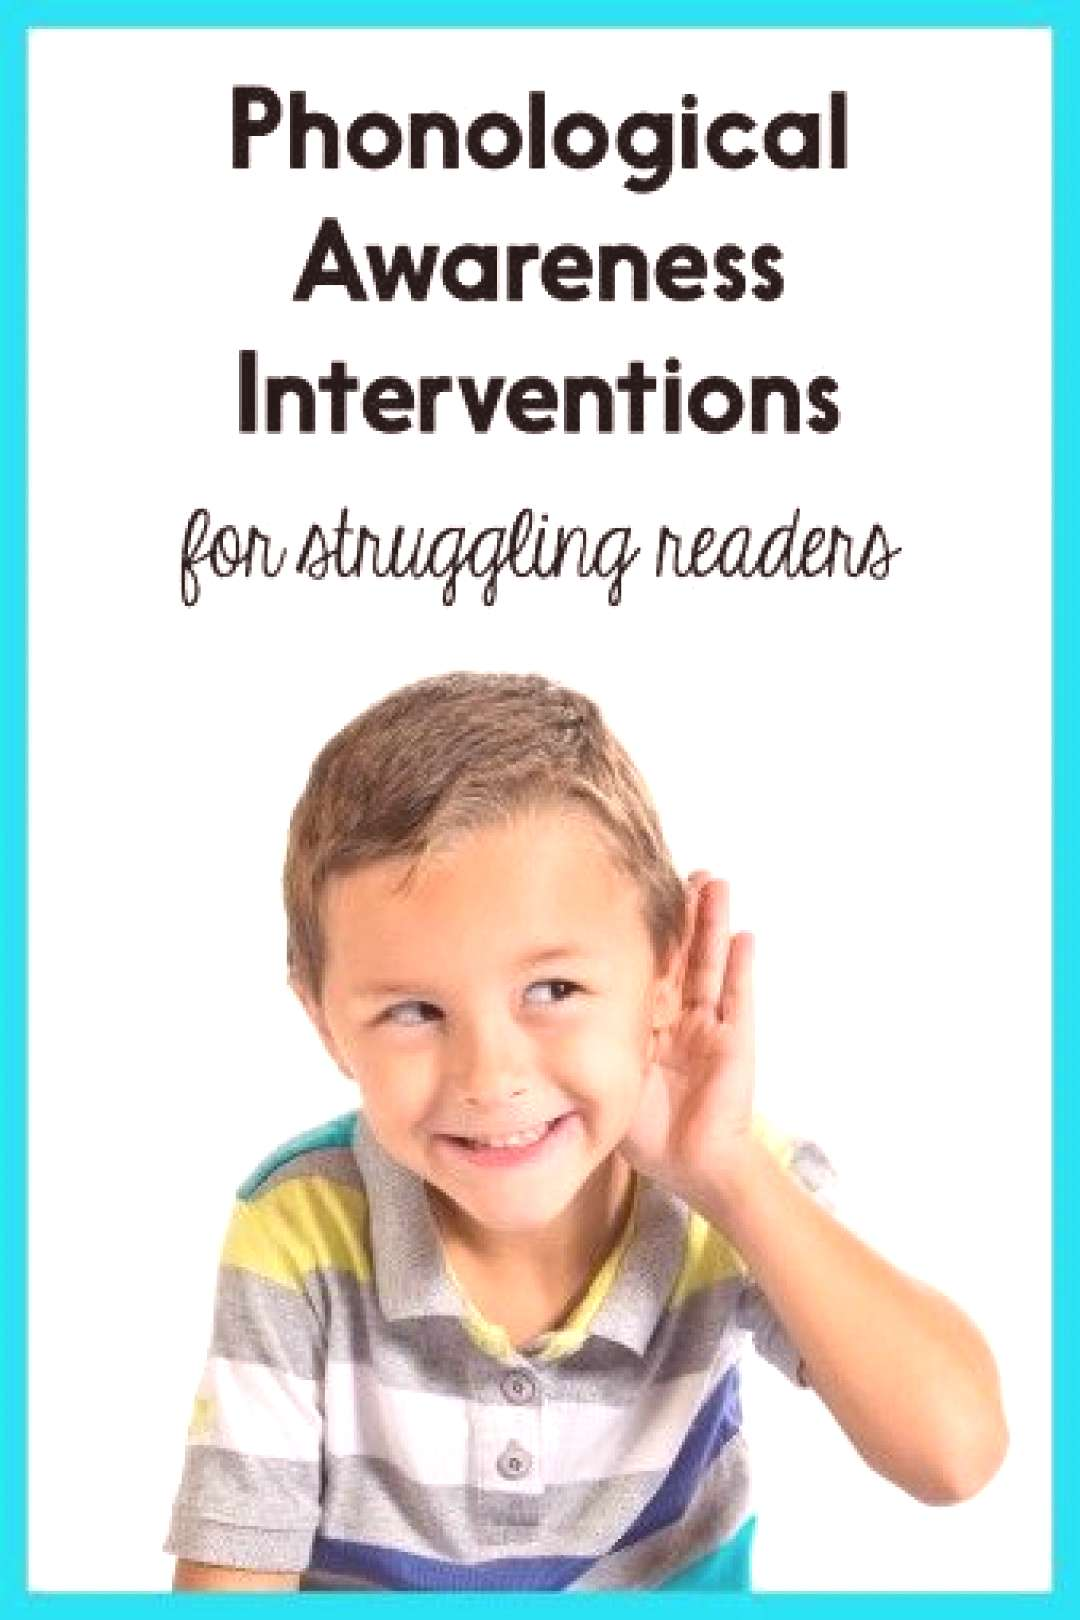 Phonological Awareness Interventions for Struggling Readers. I'll describe the different phonolog